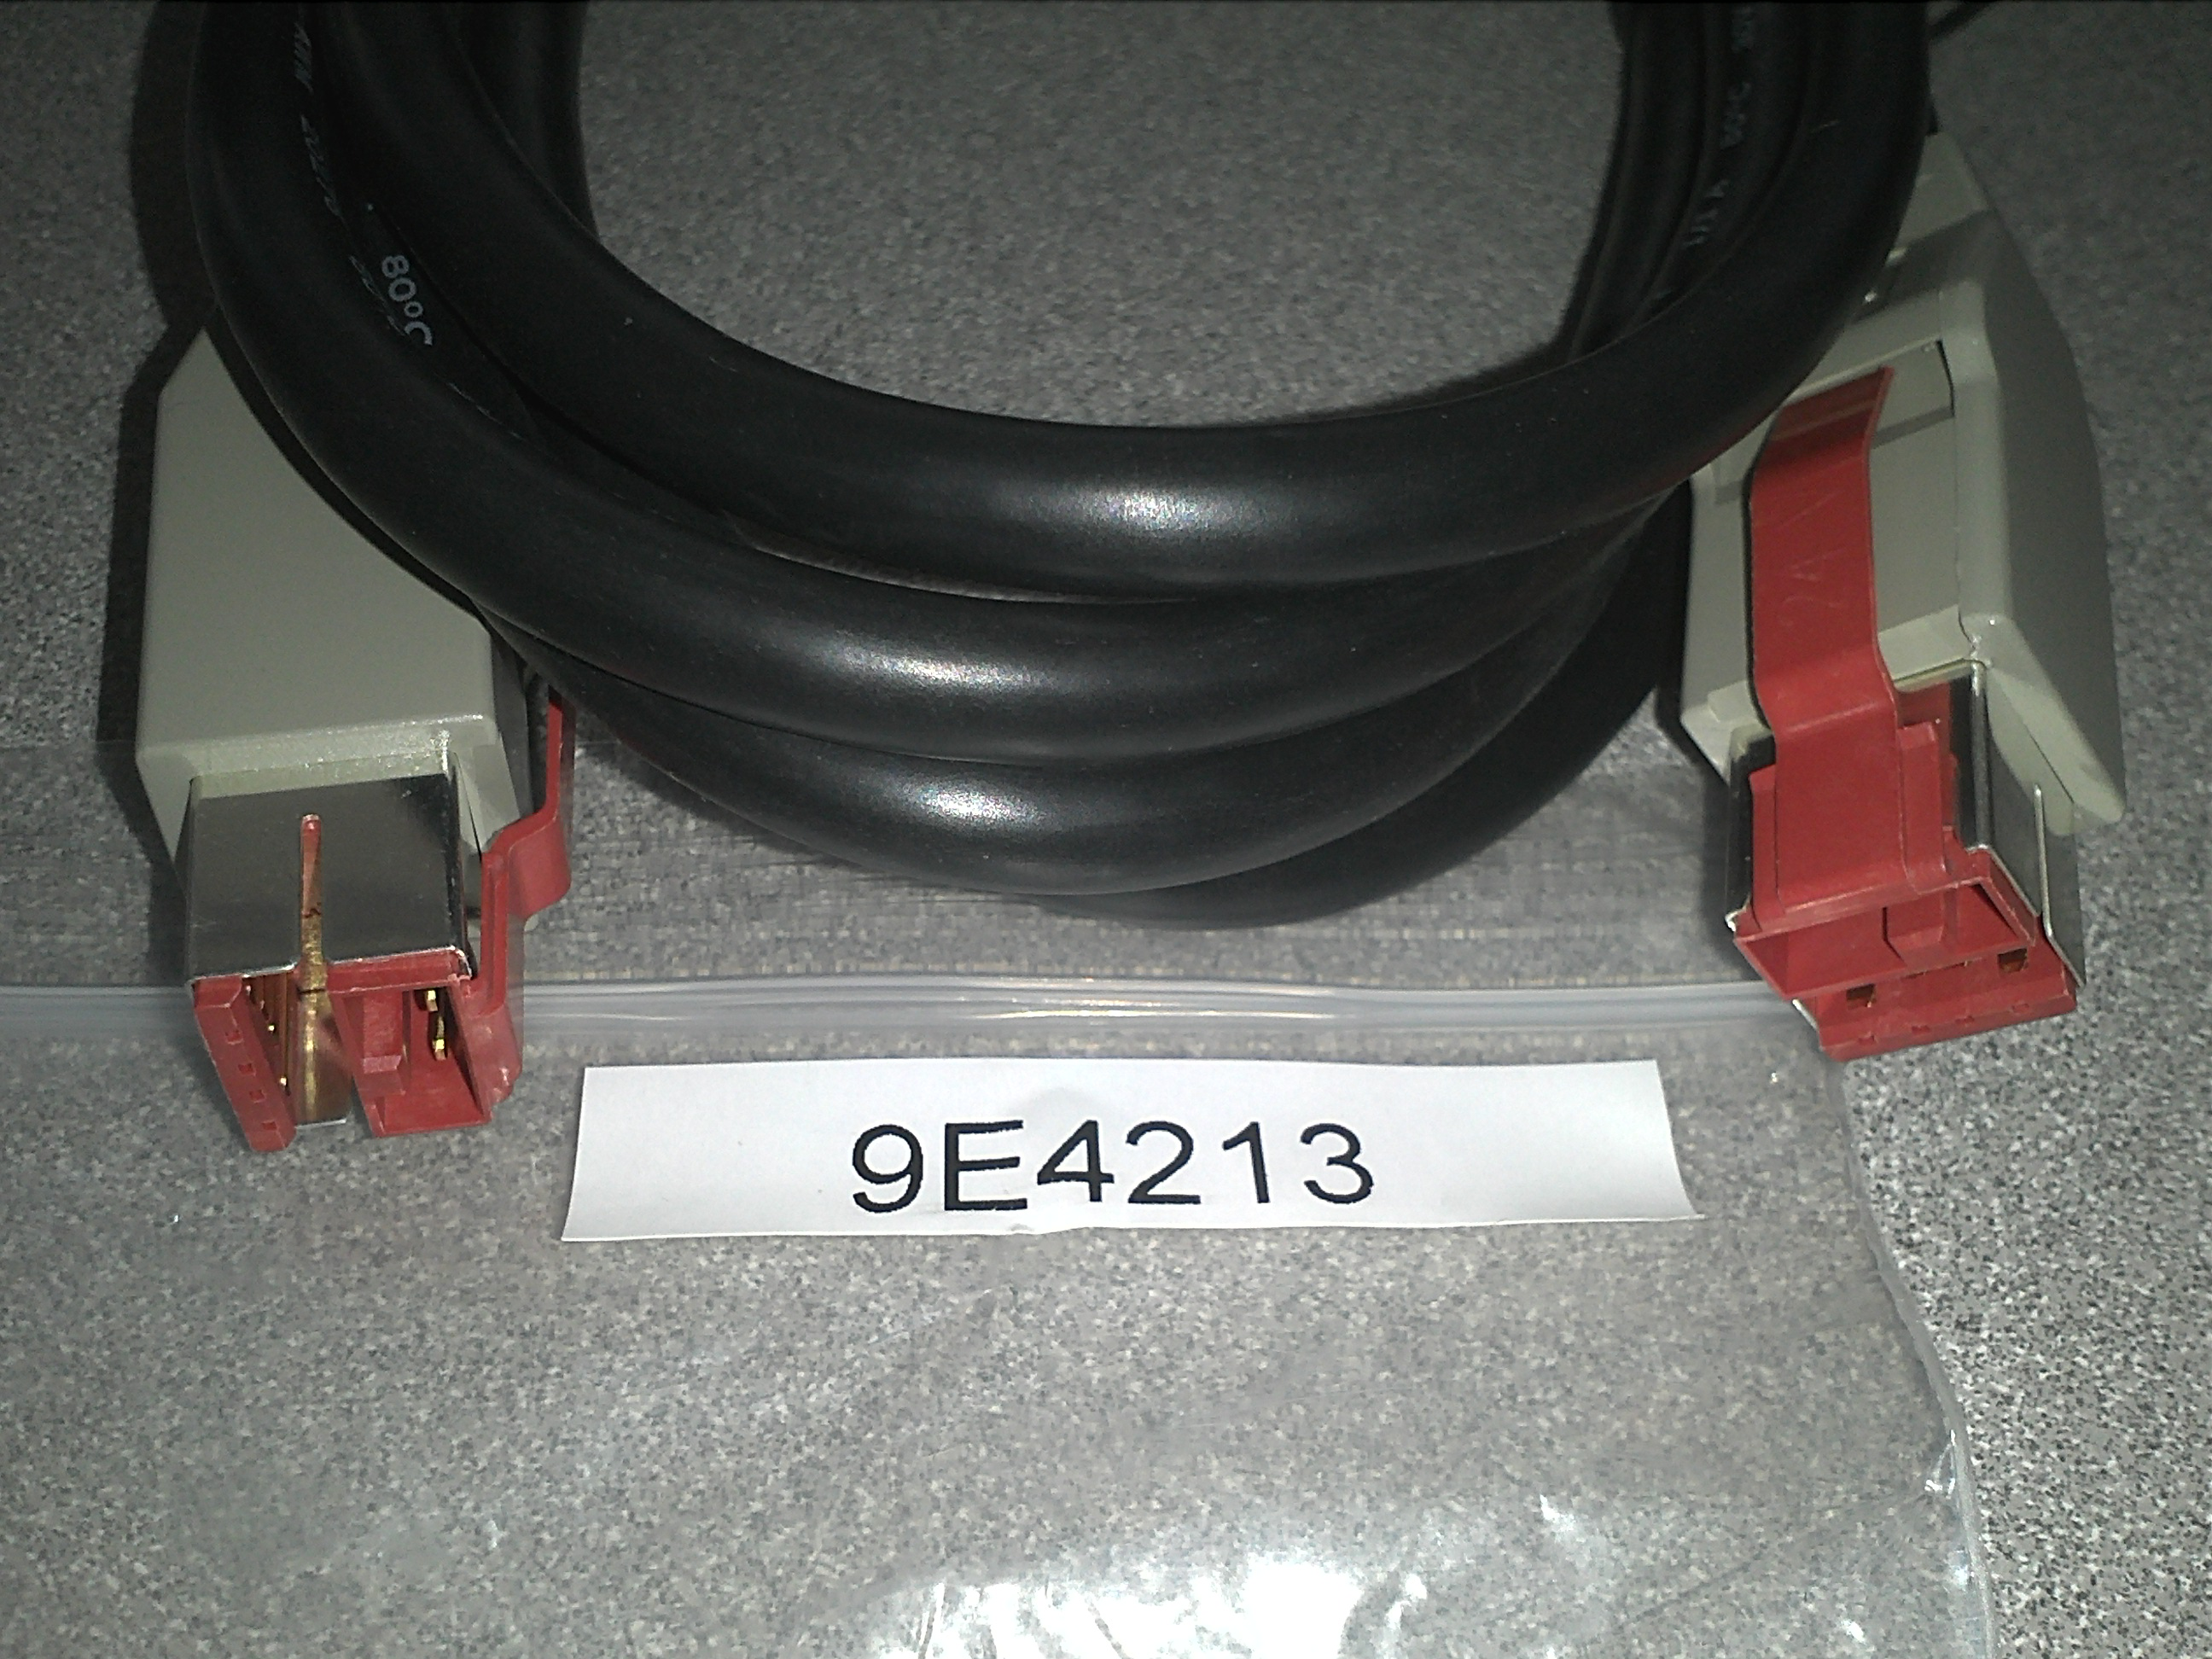 Kodak USB / Power Cable for Tethered Flatbed Attachment to i1200/i1300/i1400 Series Scanners